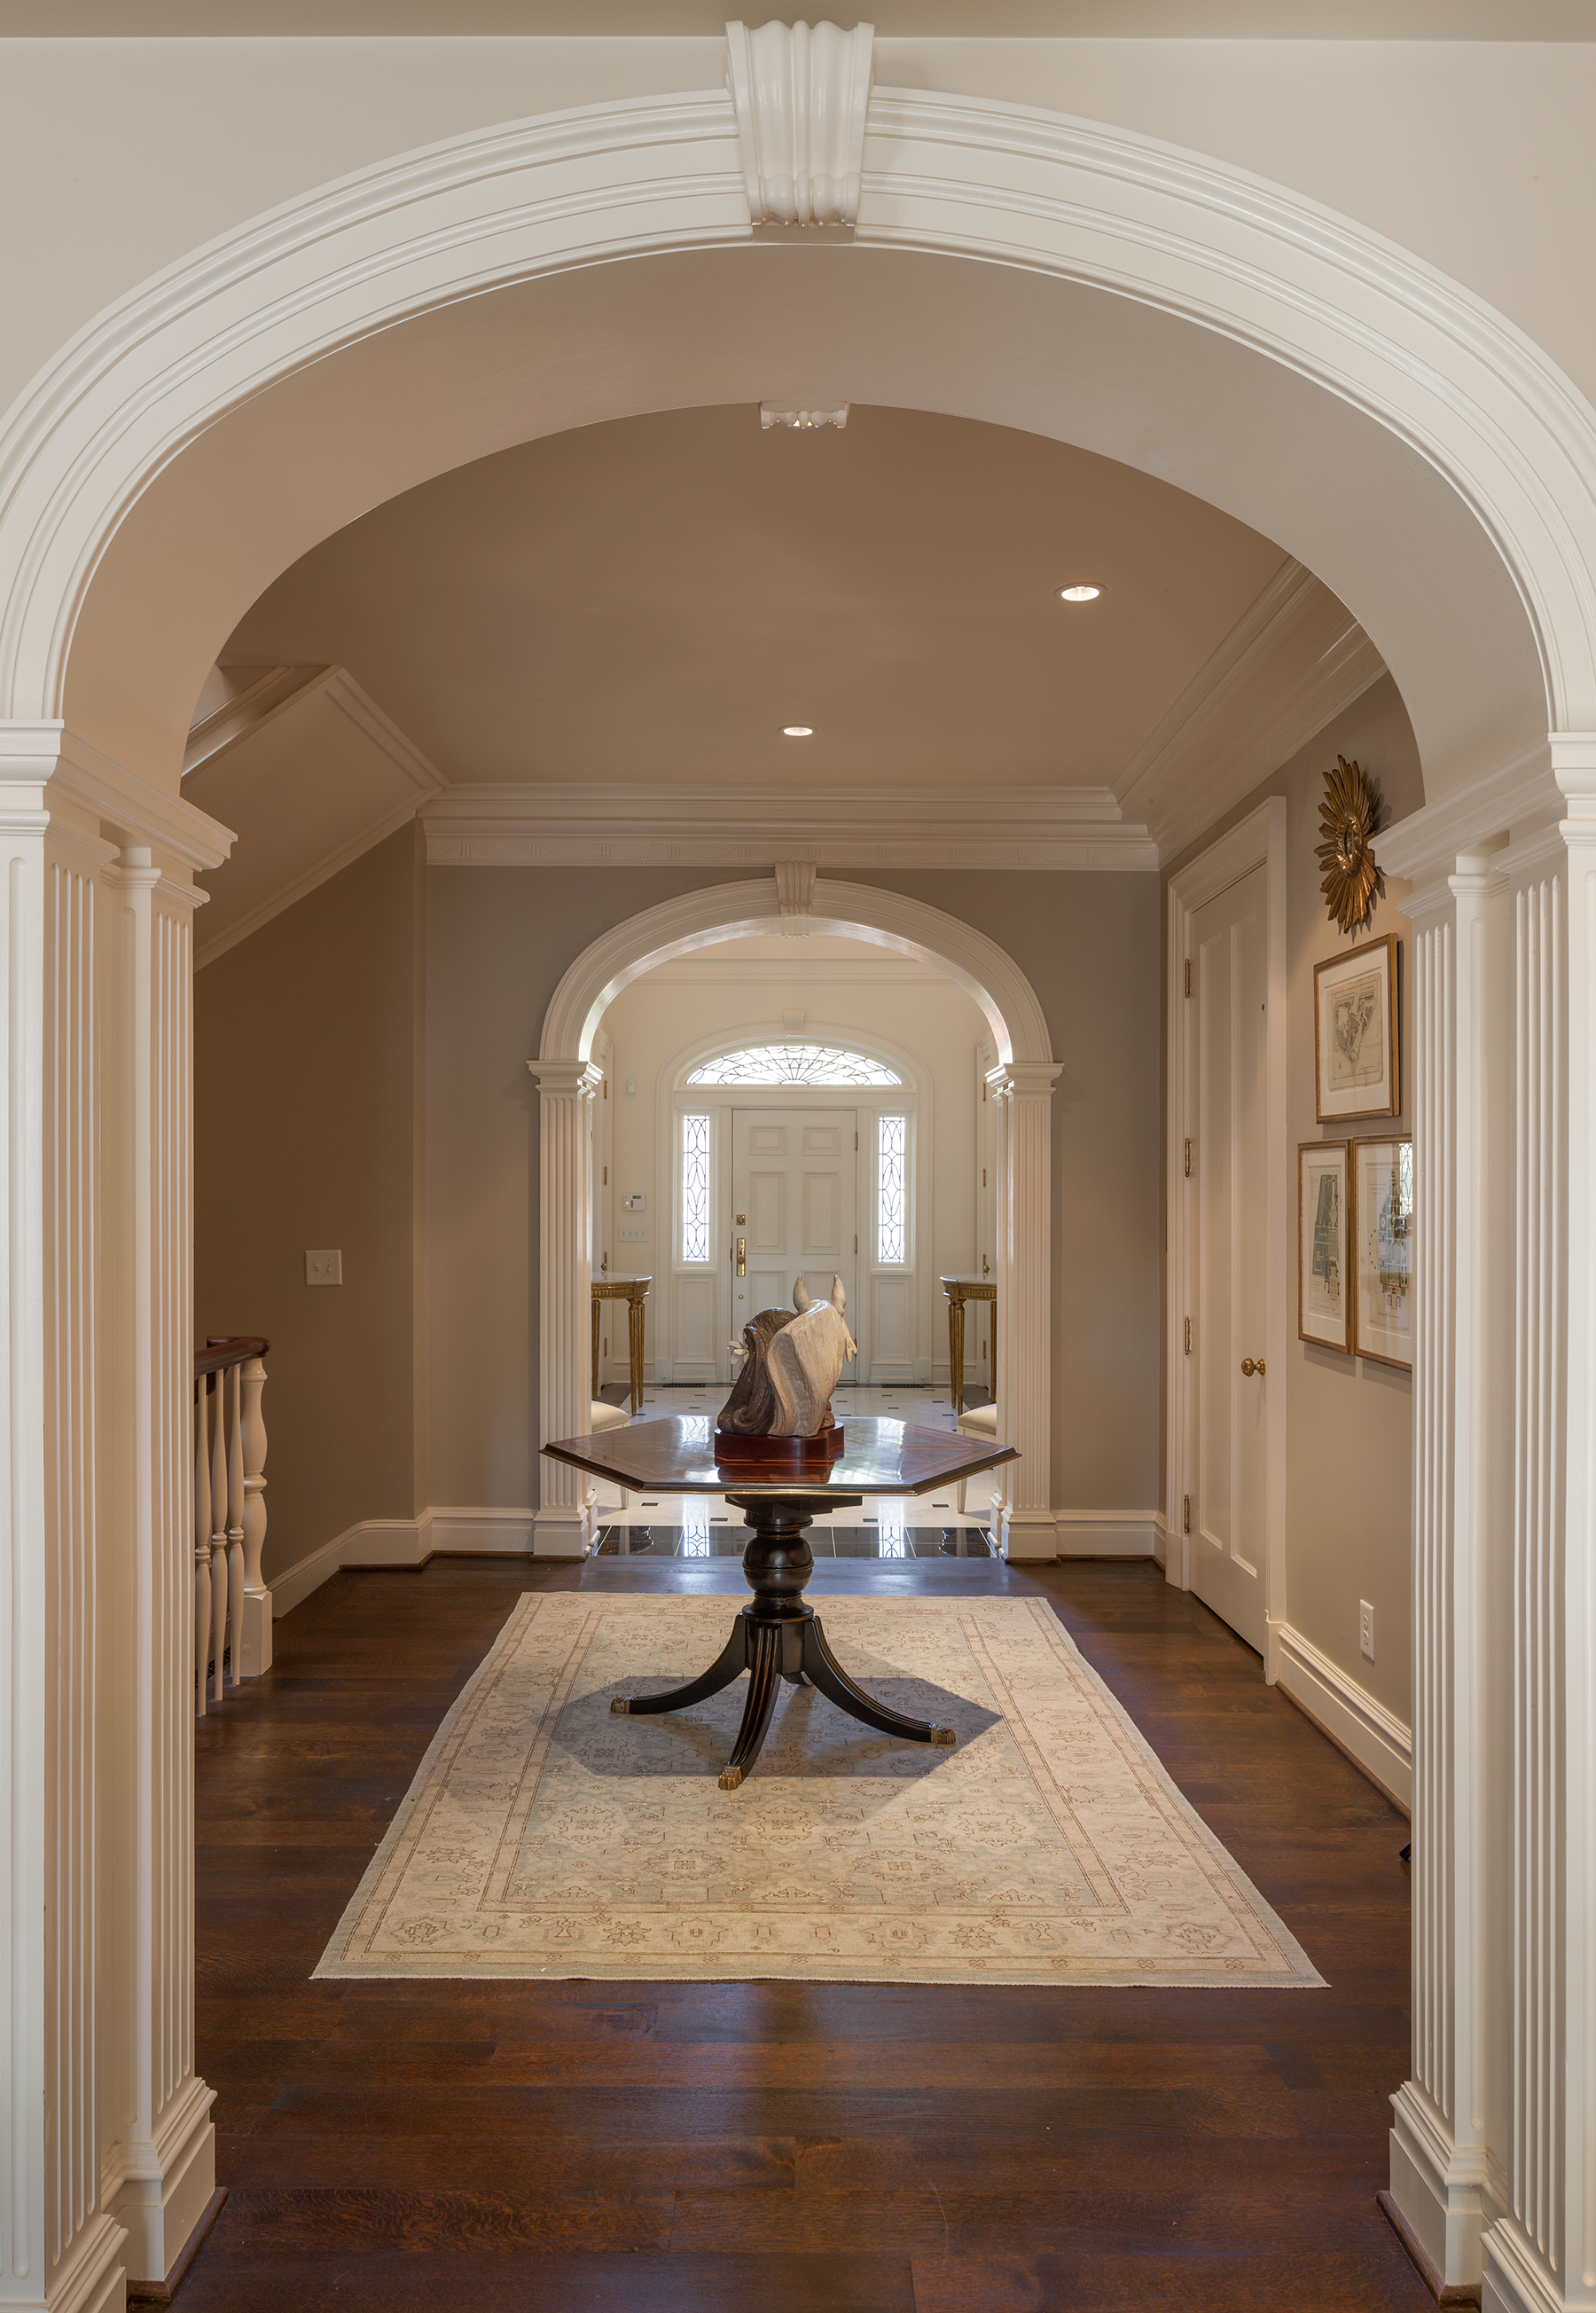 Arched Doorway, Francis Palmer Smith House | William T. Baker